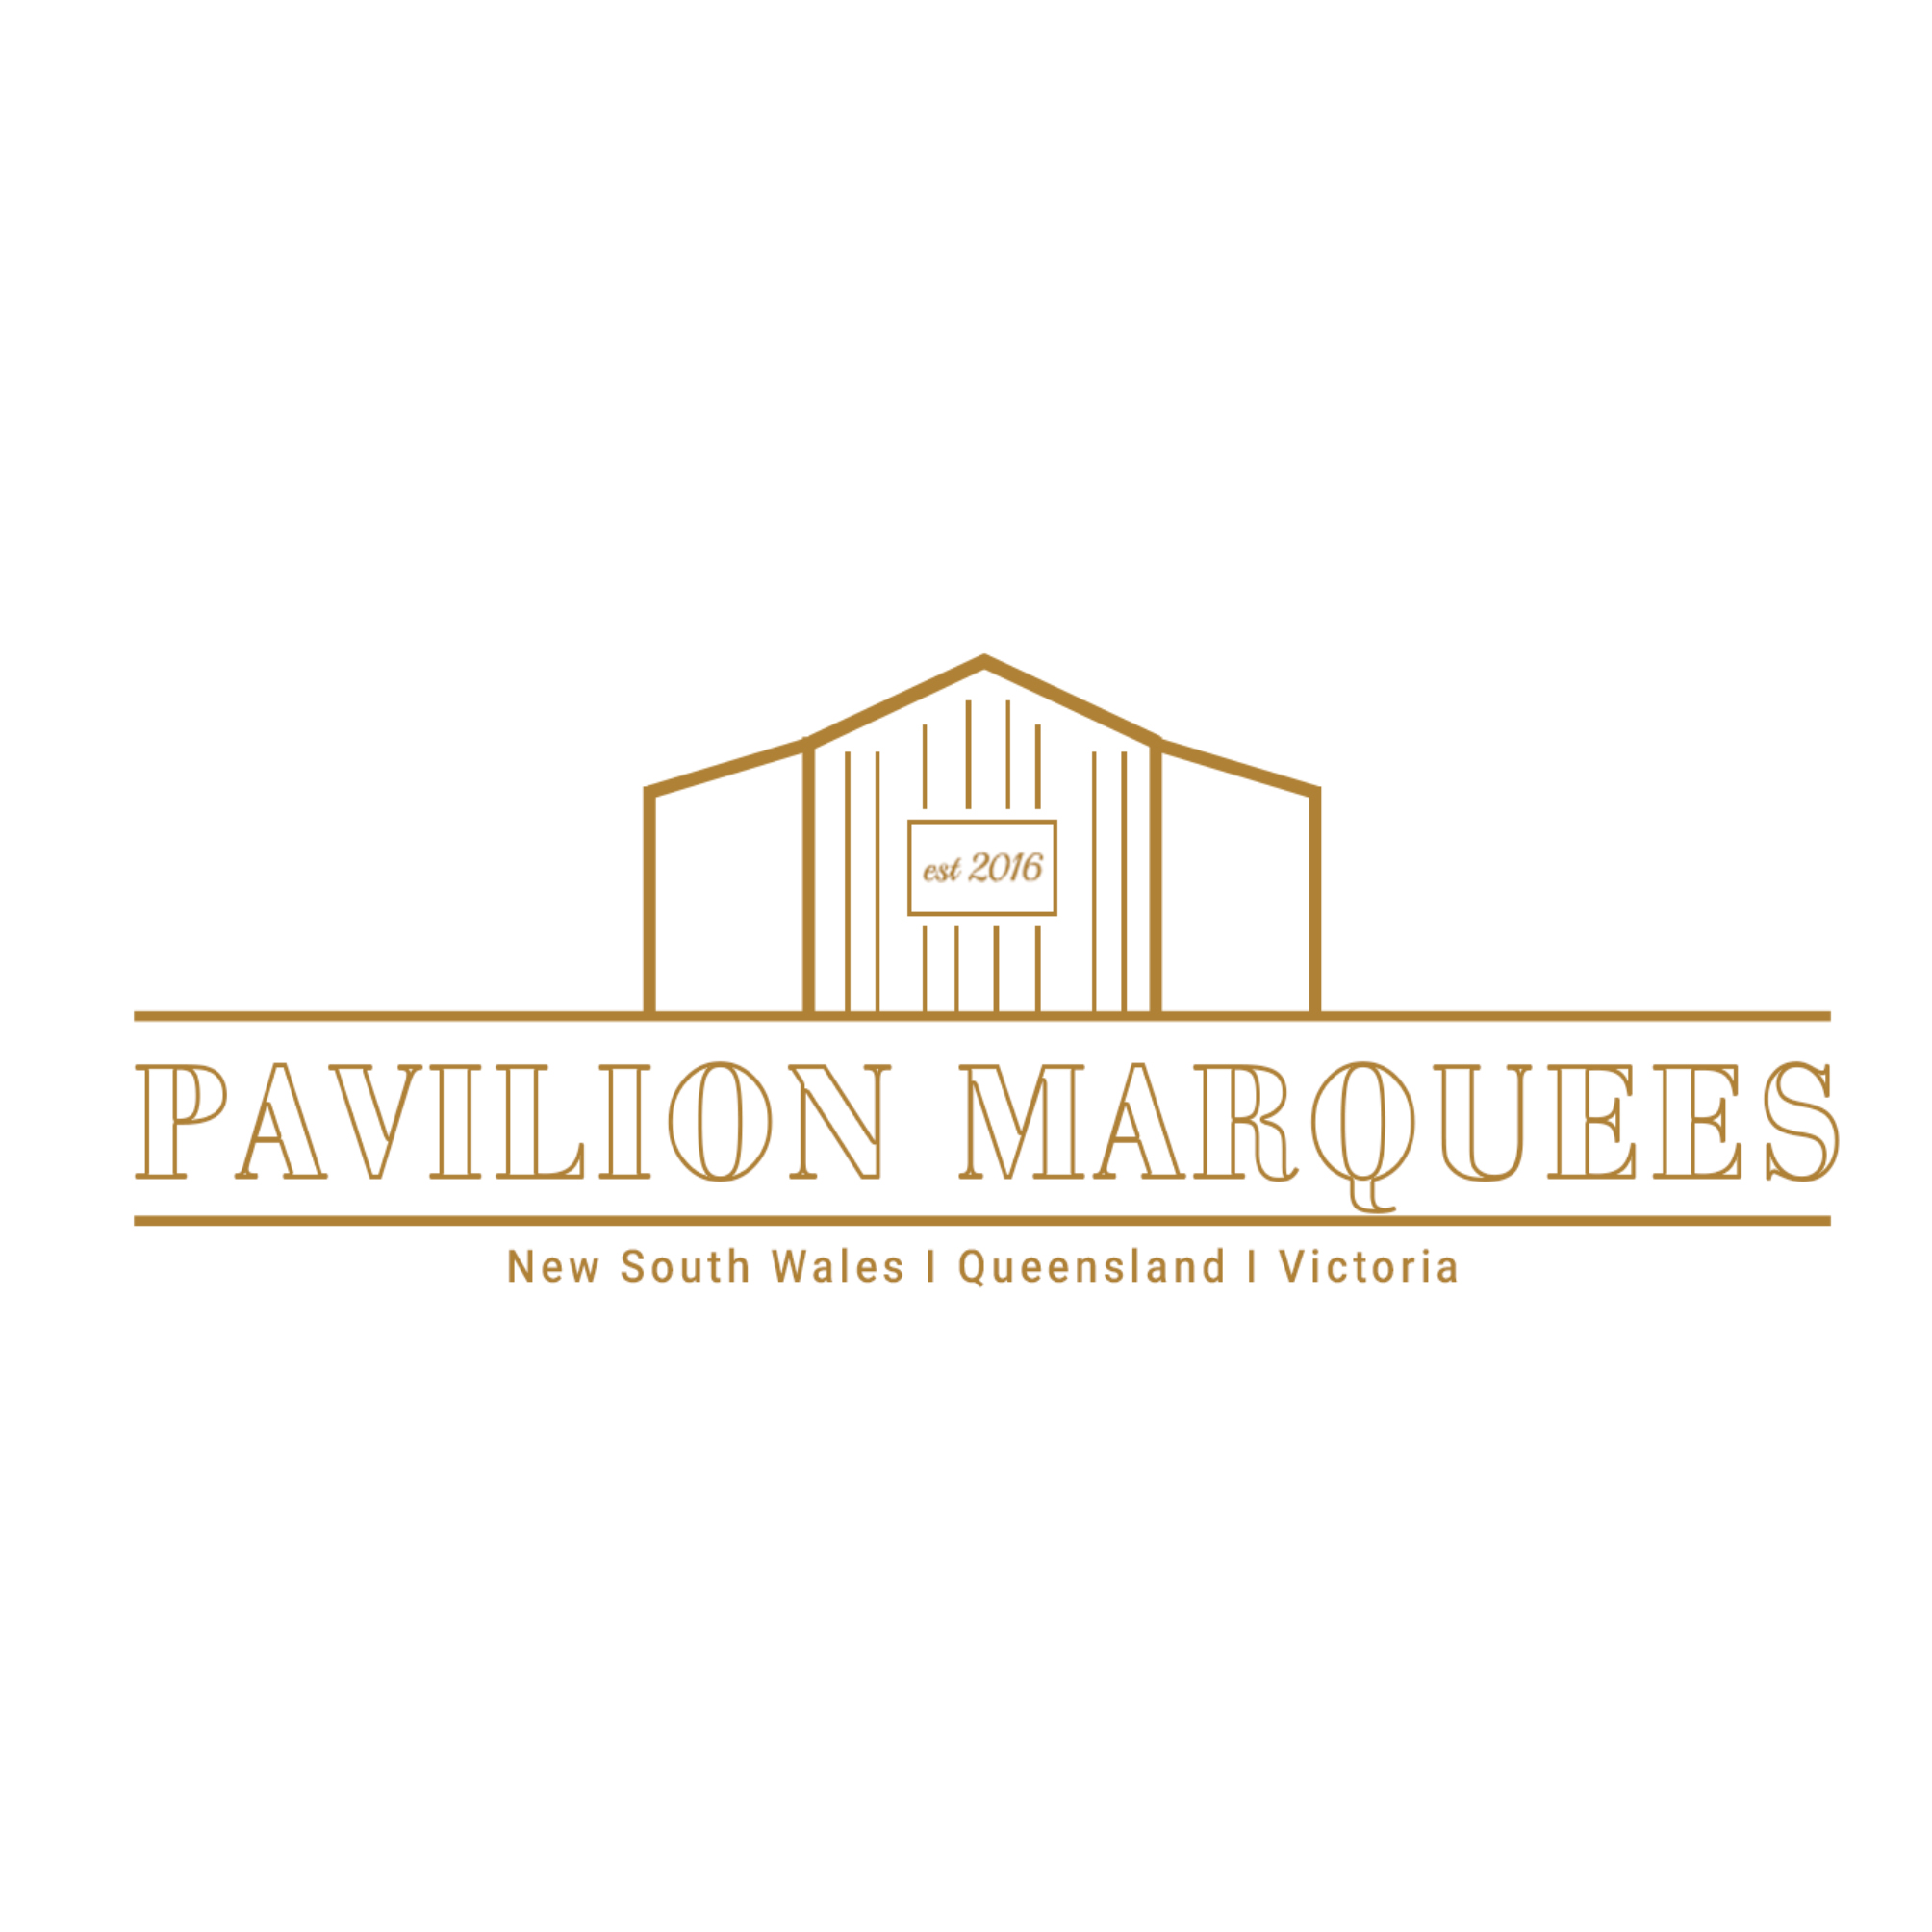 Pavilion Marquees.jpg